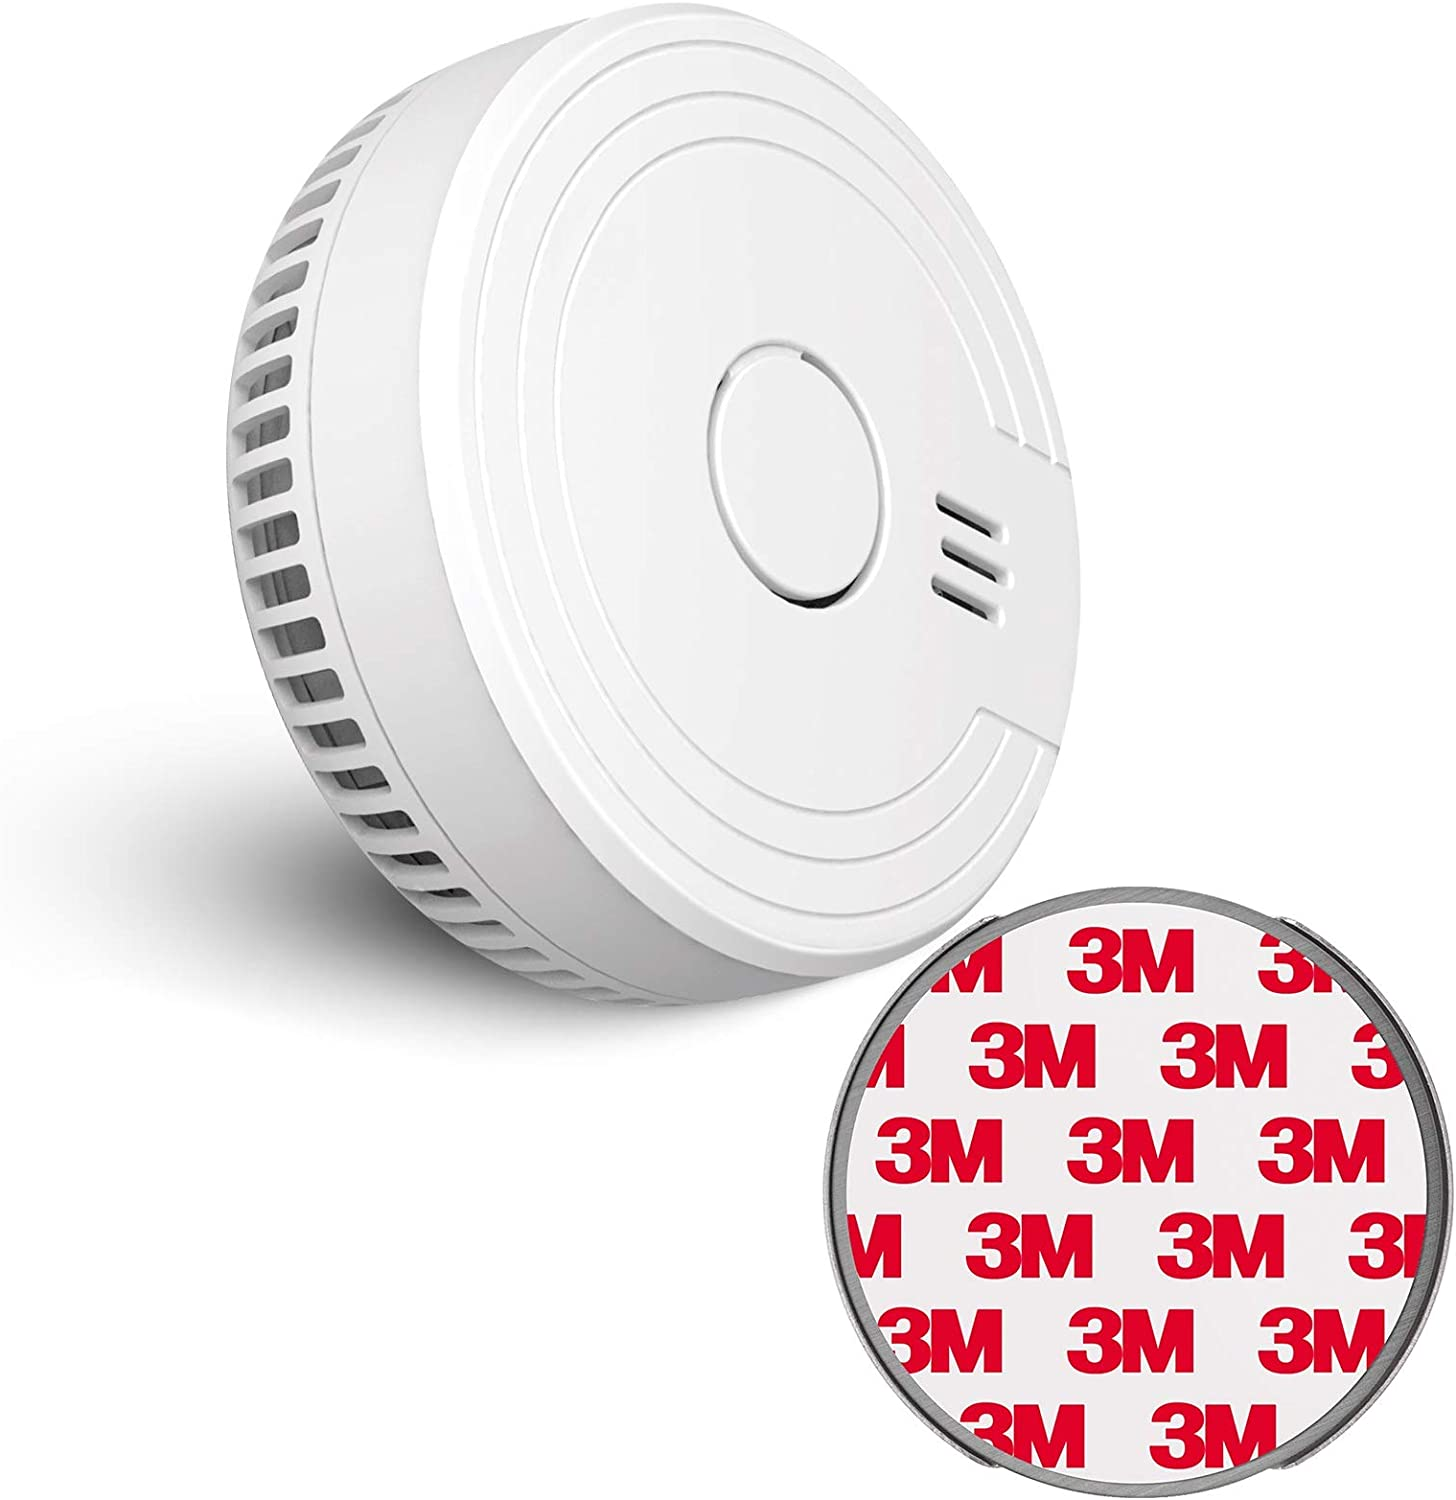 Ecoey Smoke Detector, Smoke Alarm (Battery Include) with Photoelectric Technology, Fire Detector with Test Button and Low Battery Signal, Fire Alarm for House, FJ136GB, 1 Pack